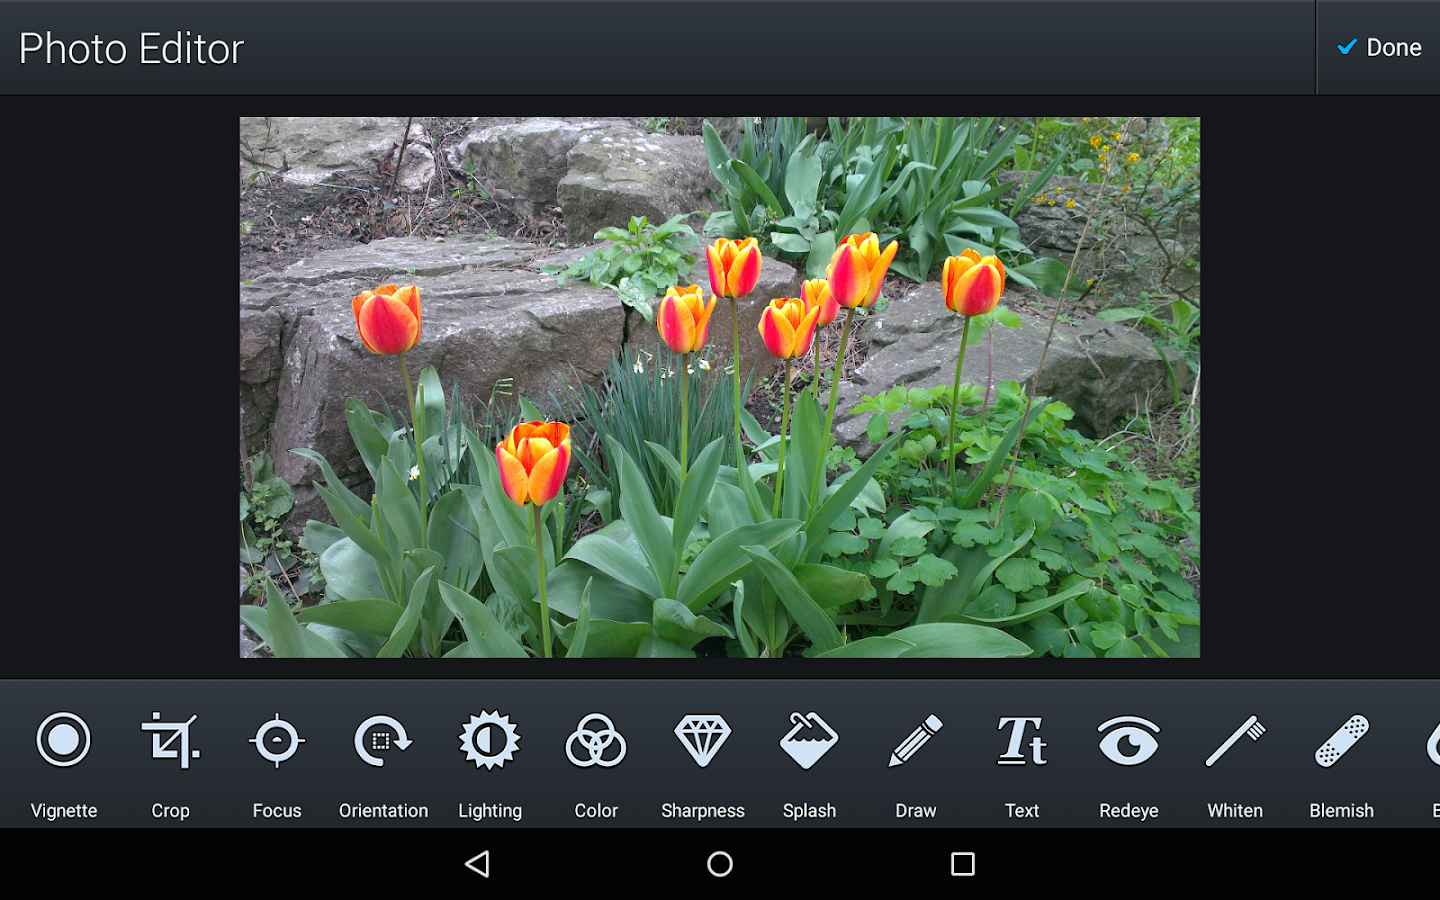 Darkroom Gallery Photo Editor Screenshot 7